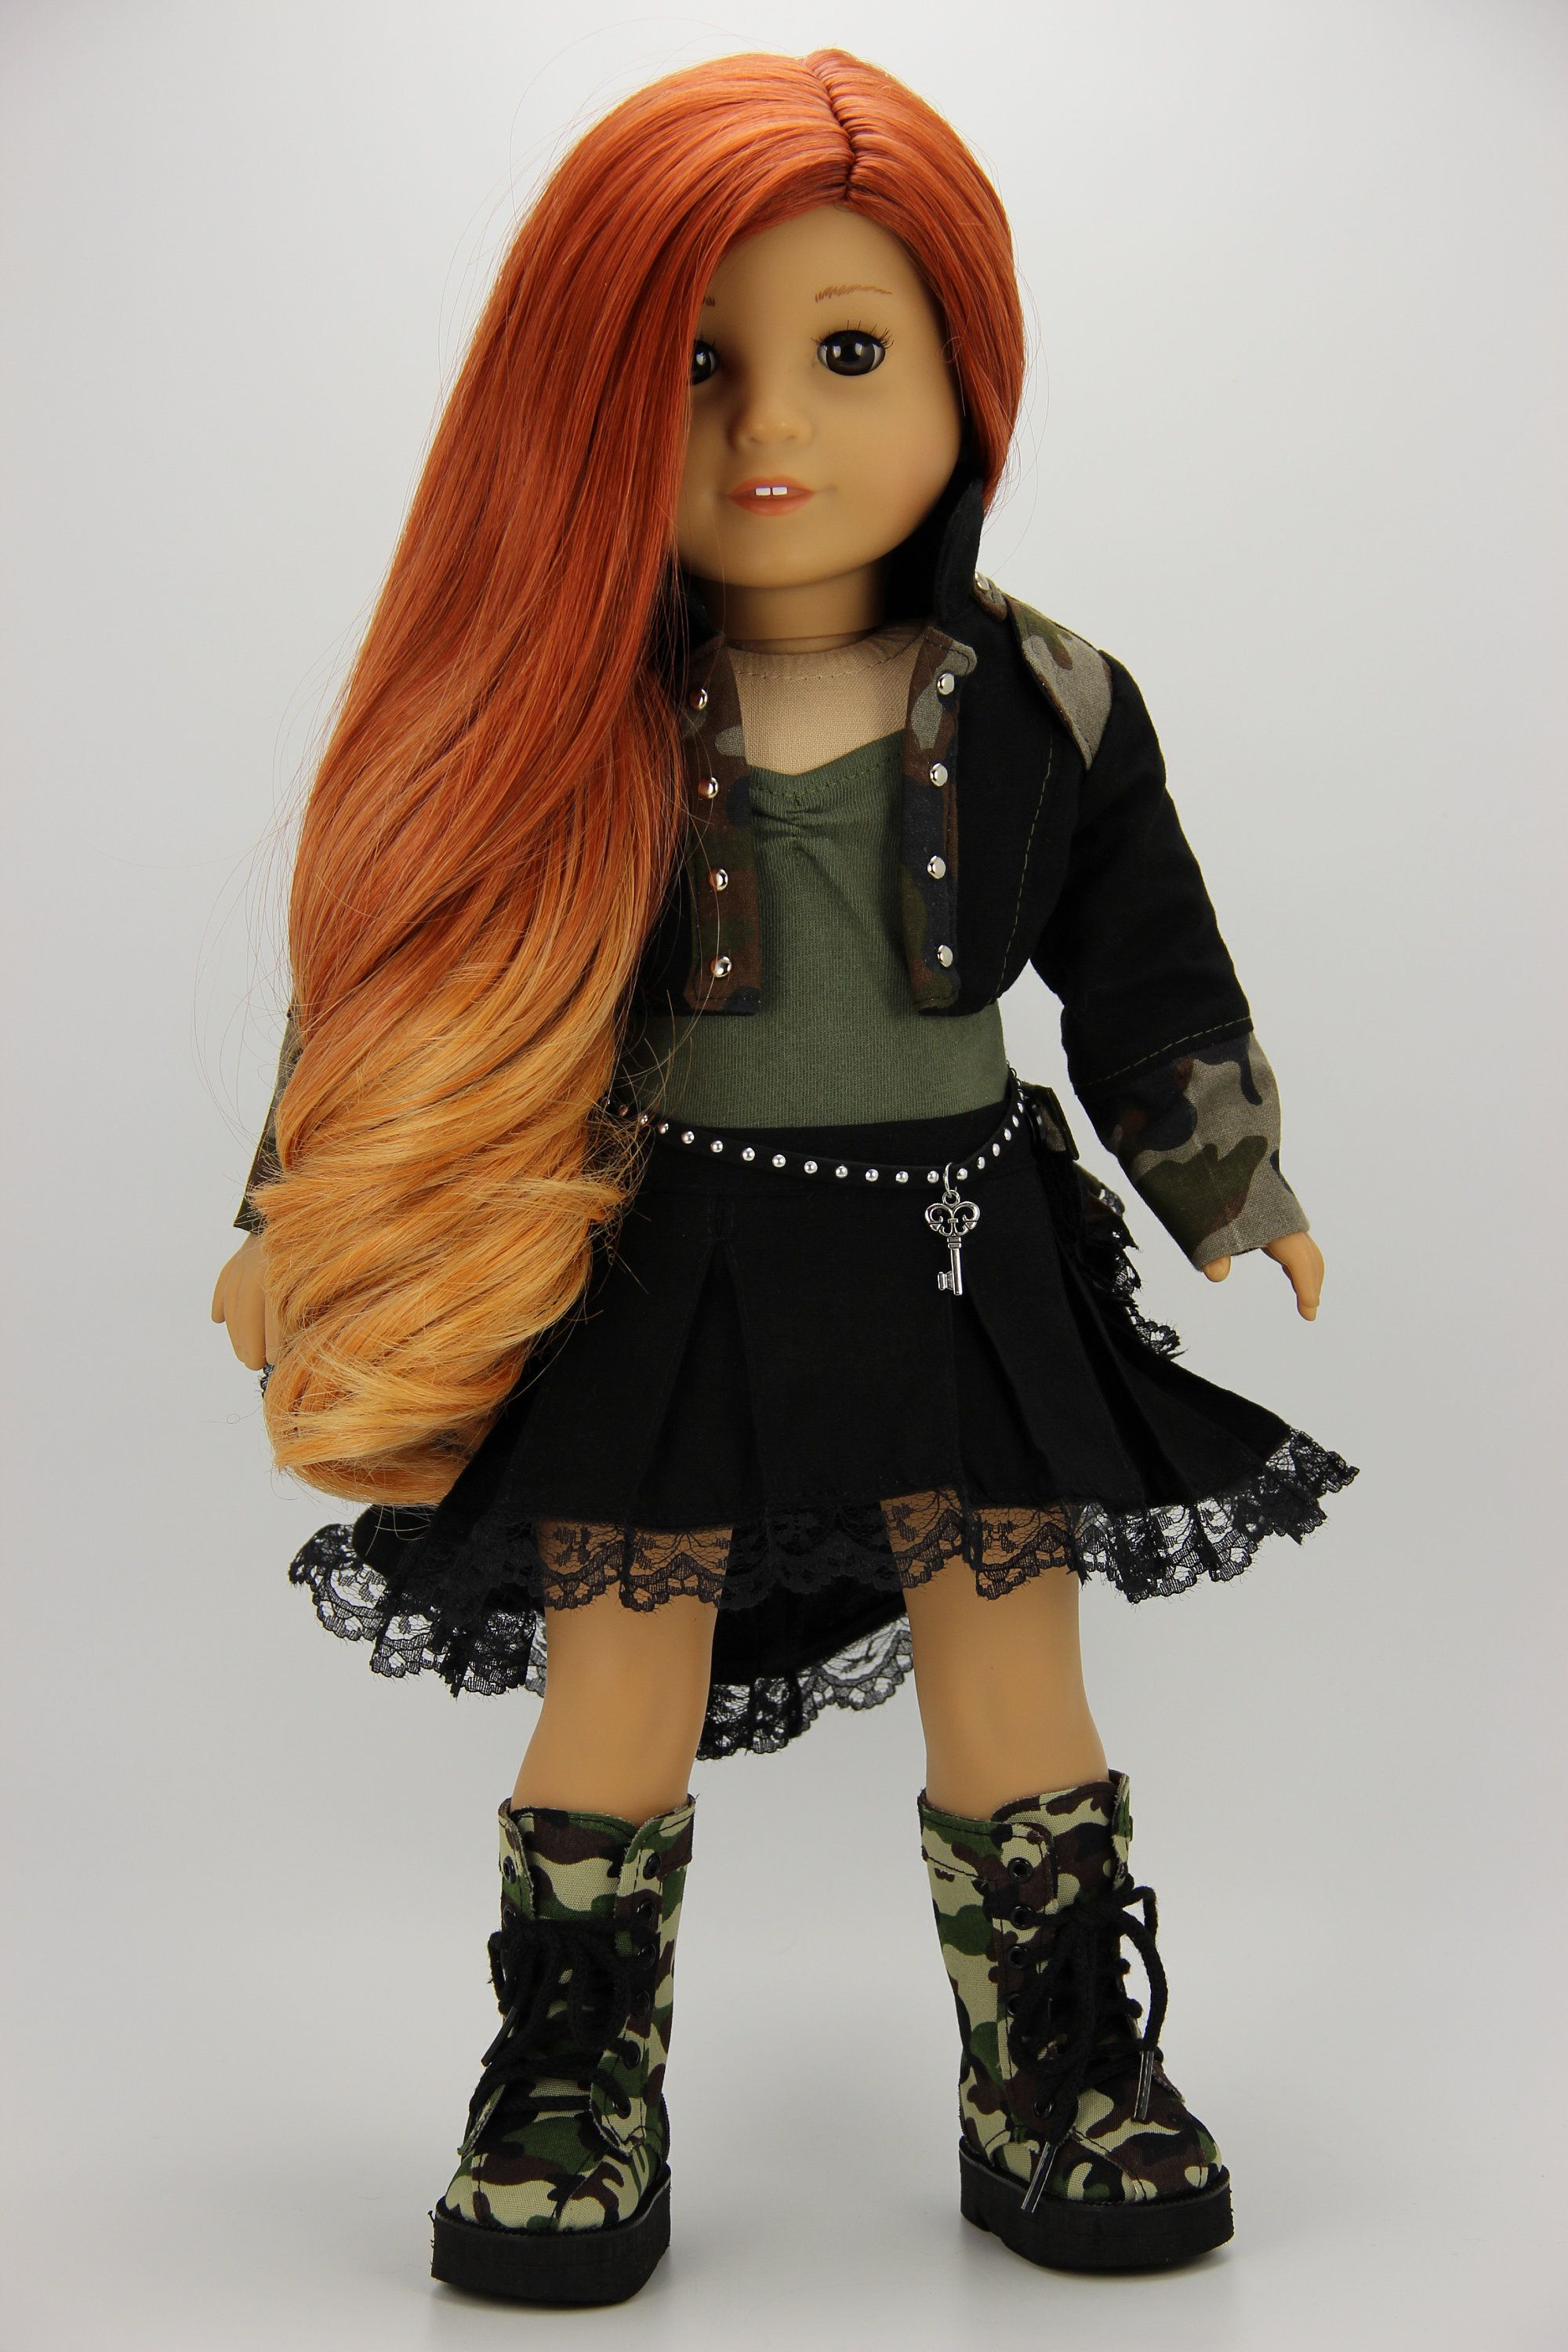 Handmade 18 inch doll clothes - Black and camo 5 piece steam punk outfit (1202) #18inchdollsandclothes